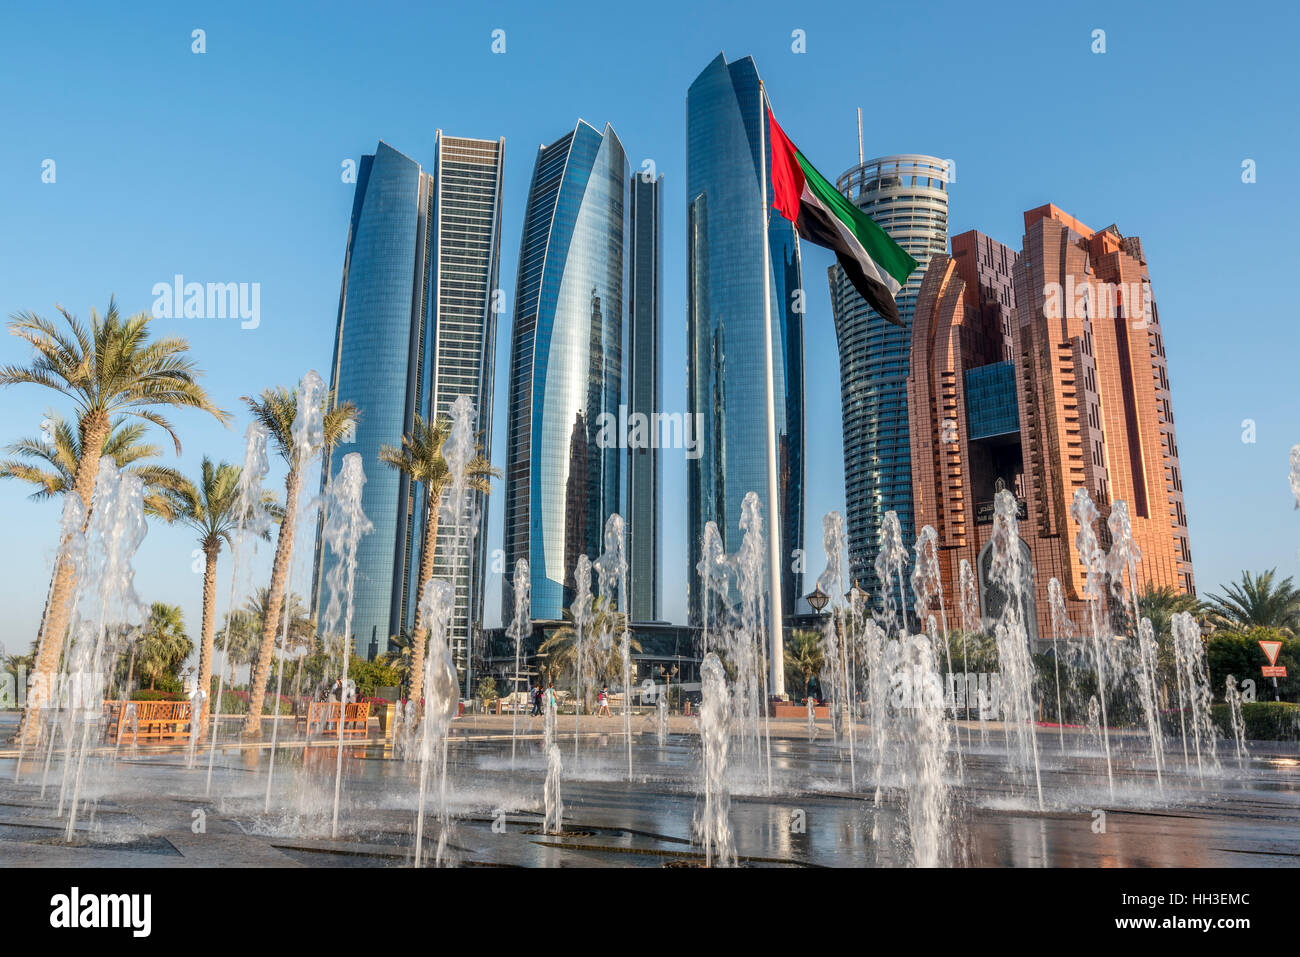 Modern Buildings Part - 35: Modern Buildings On The Corniche In Abu Dhabi With Fountains And National  Flag